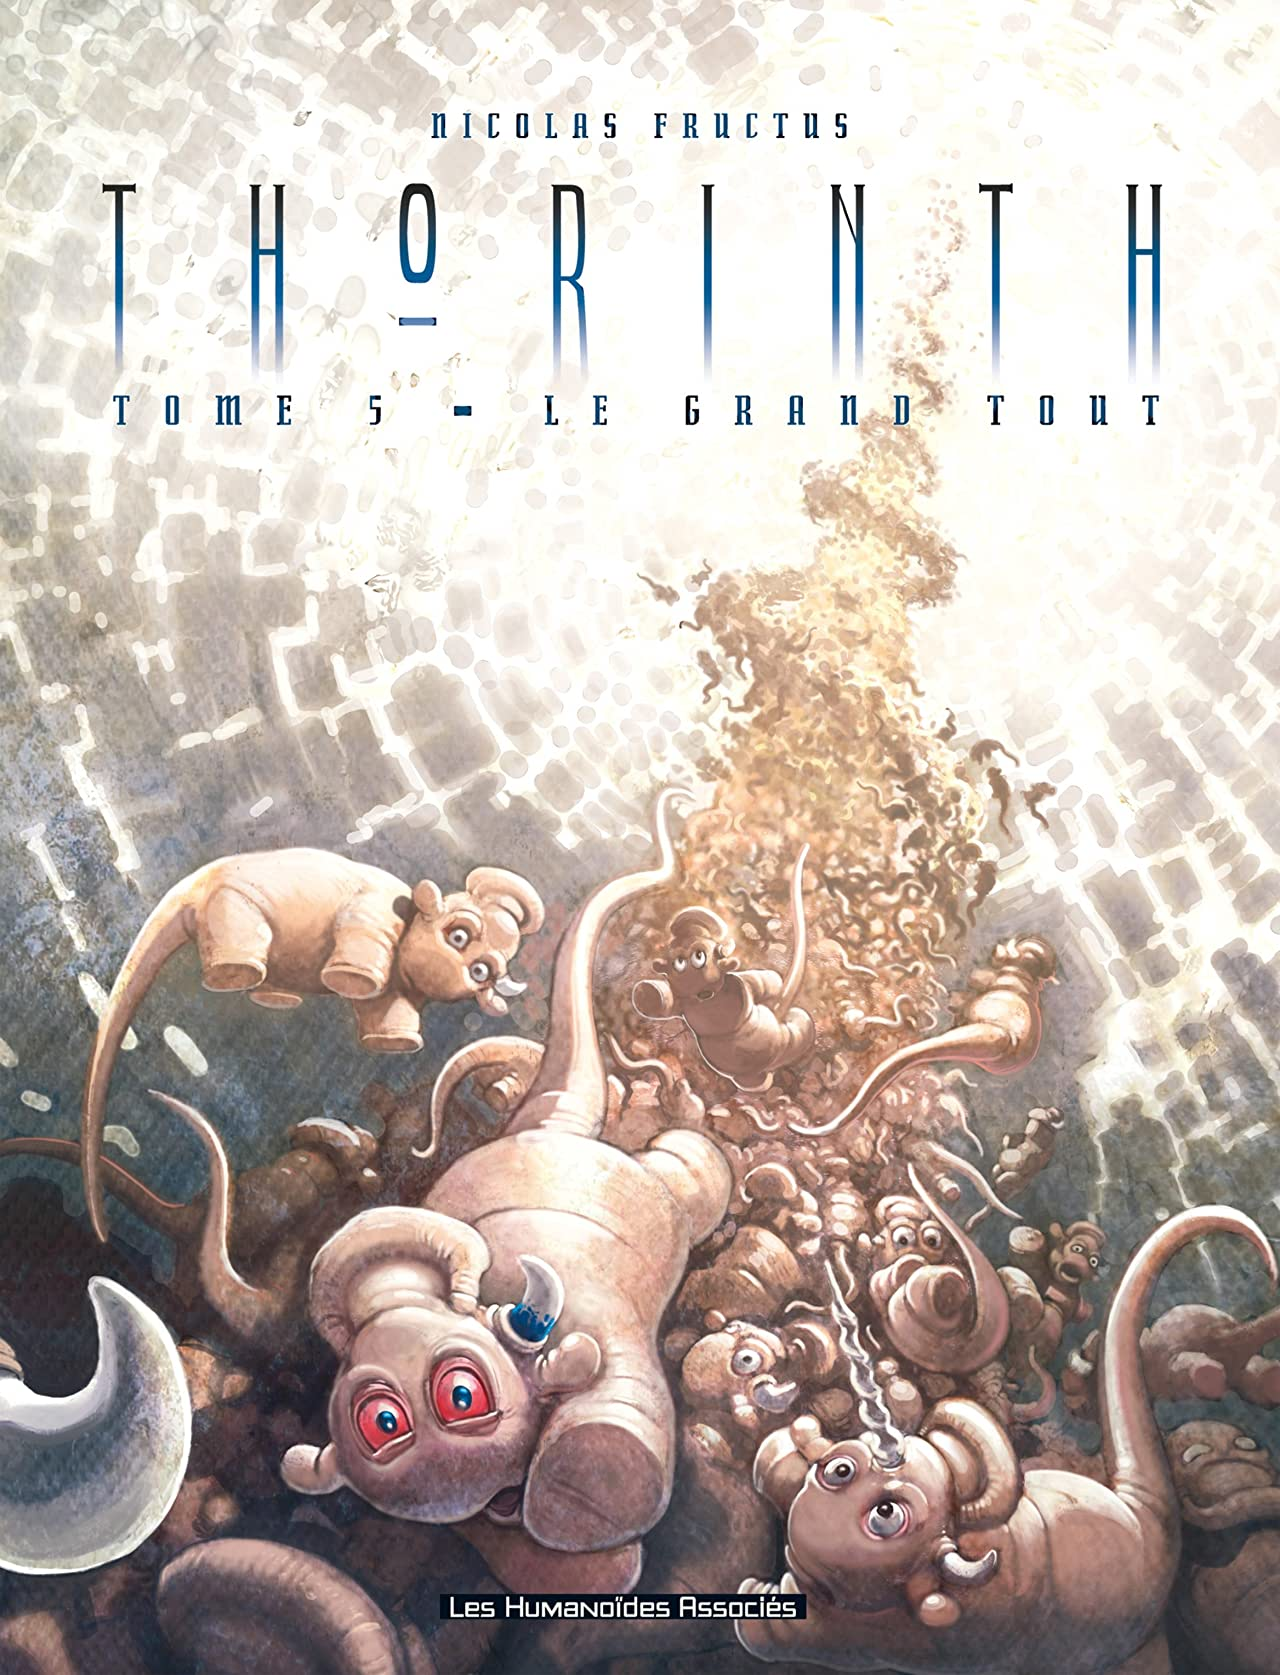 Thorinth Tome 5: Le Grand tout